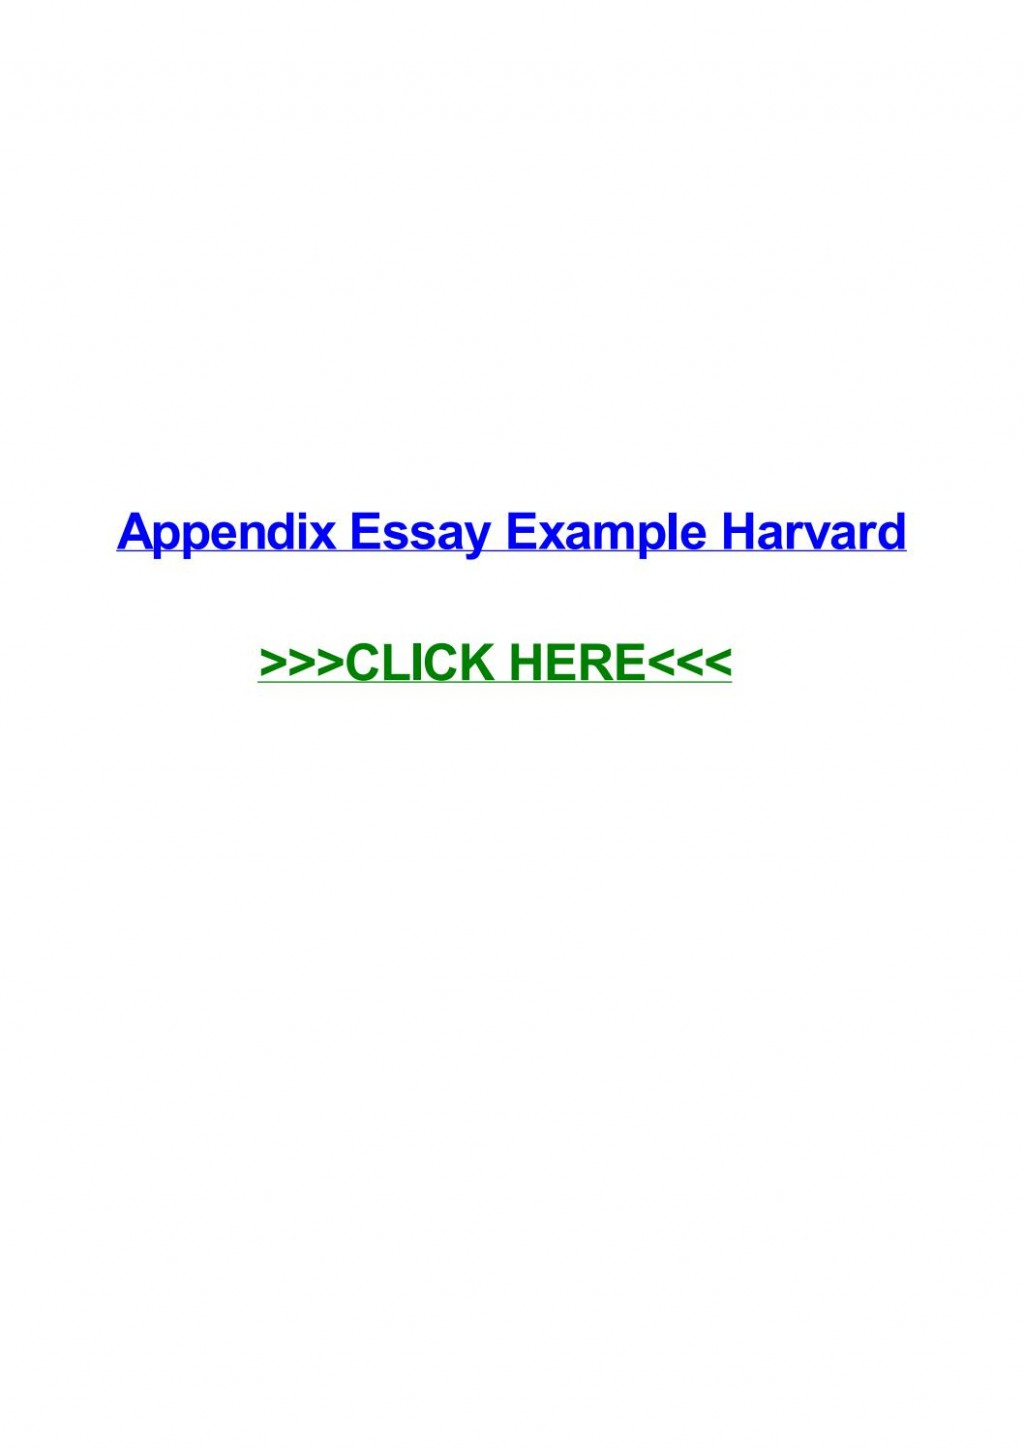 009 Essay Example Appendix Page 1 Remarkable Harvard Meaning History Large